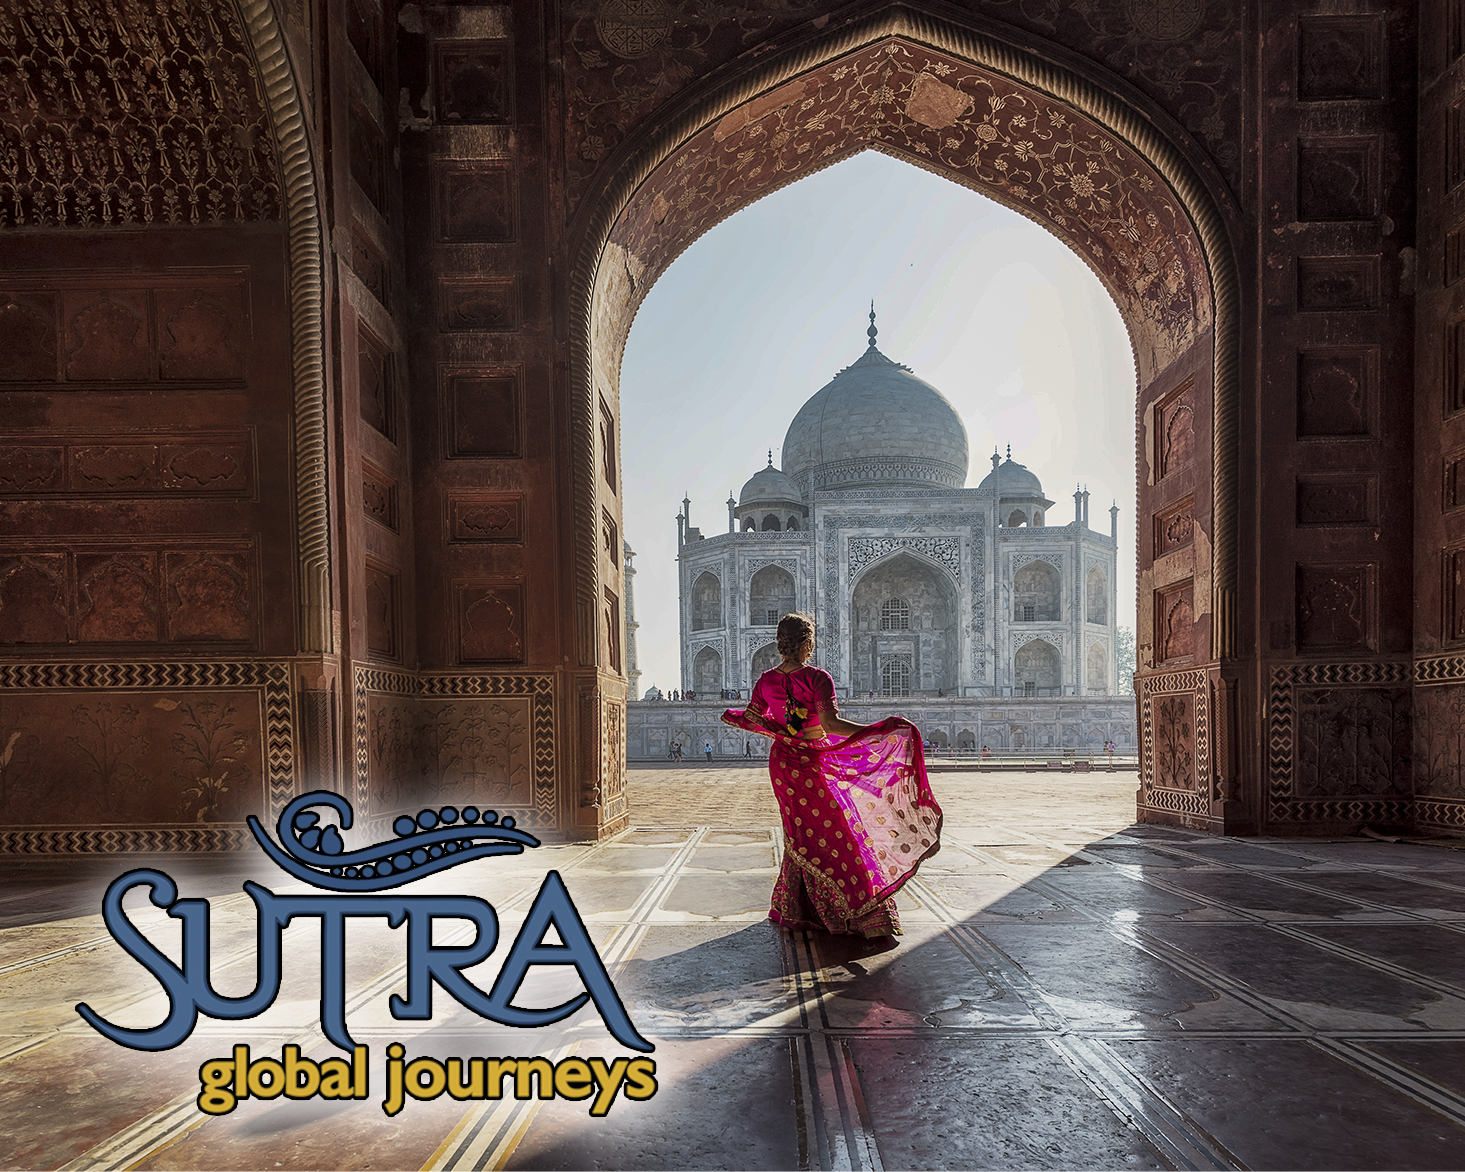 SUTRA GLOBAL JOURNEYS 2020 Small group Tours and Retreats